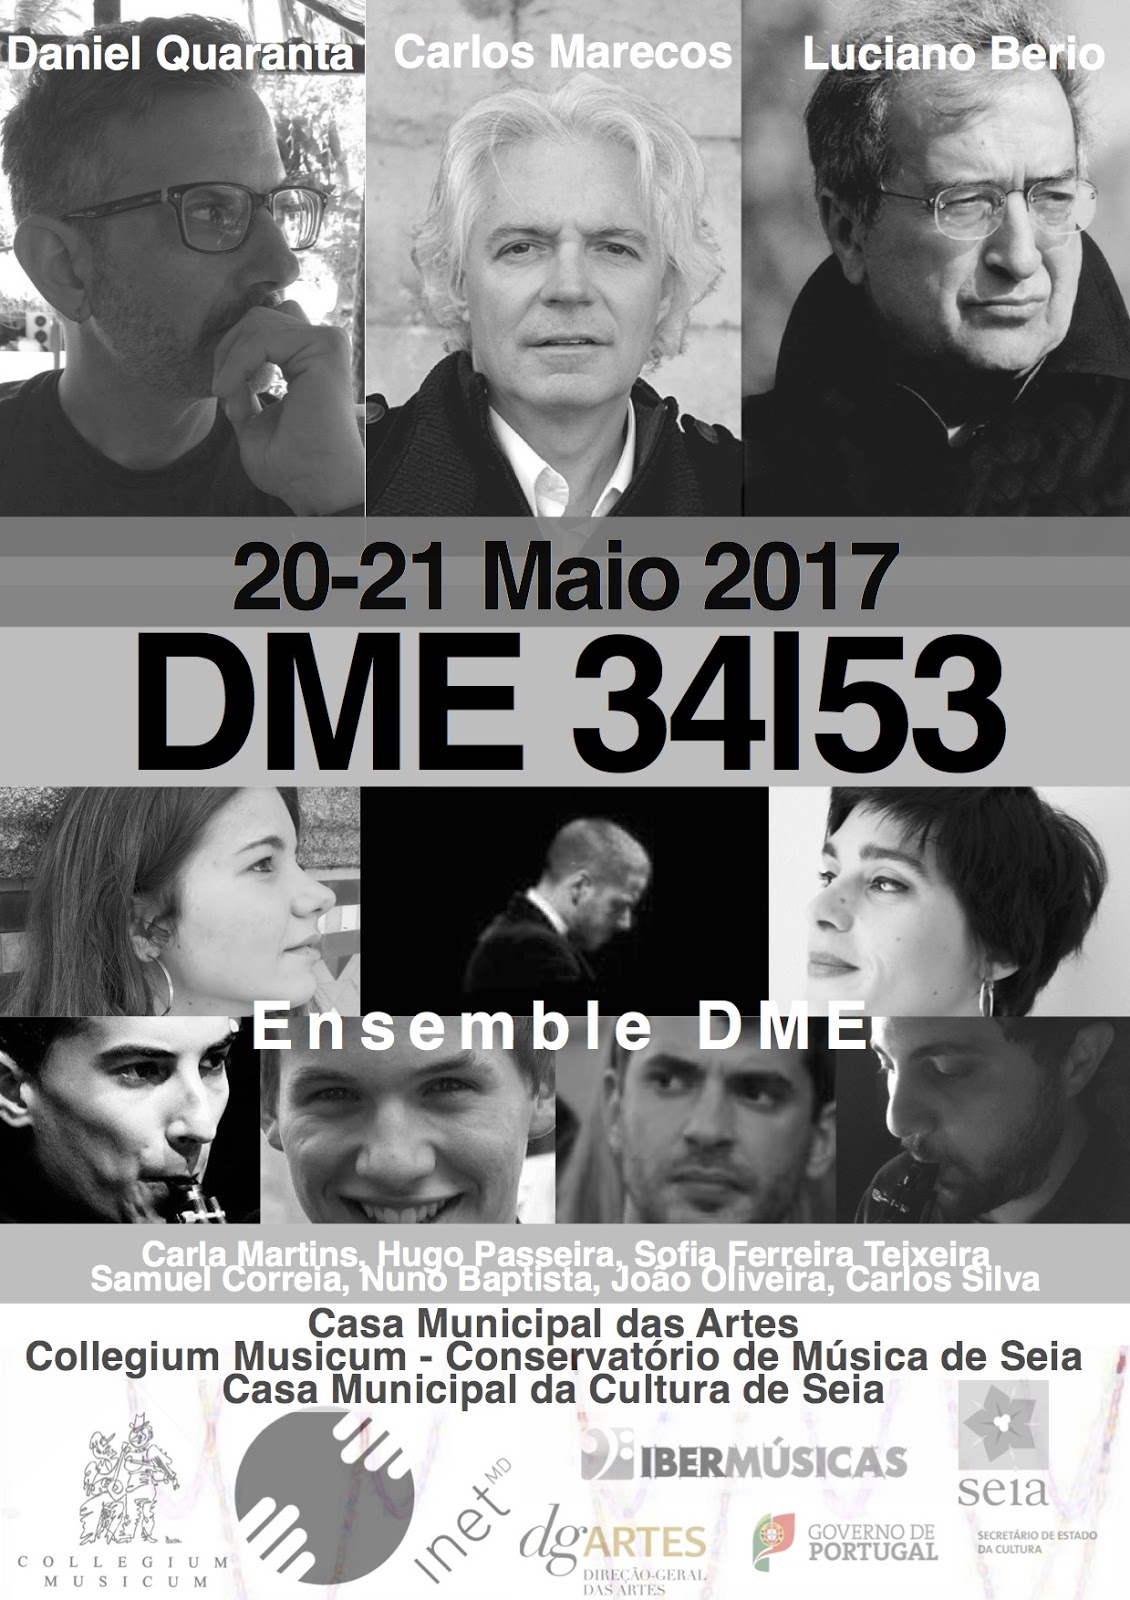 DME 34/53